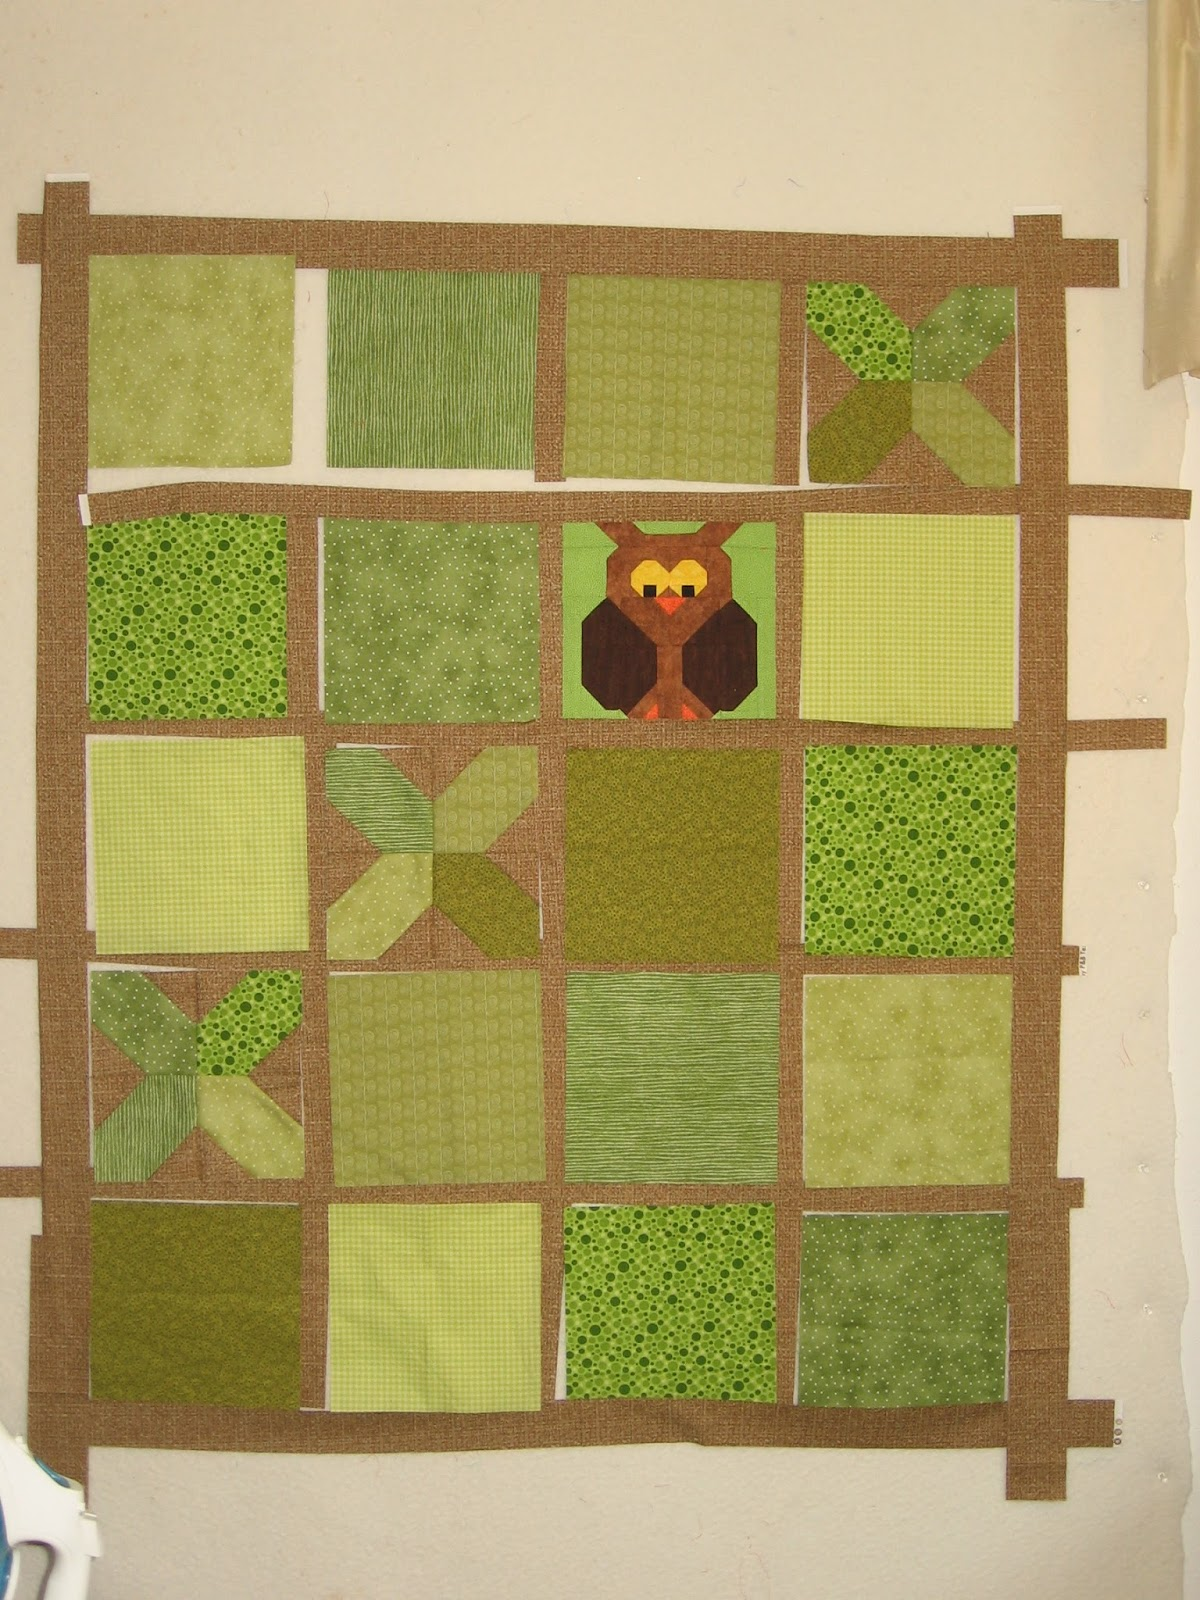 Canuck Quilter: October 2016